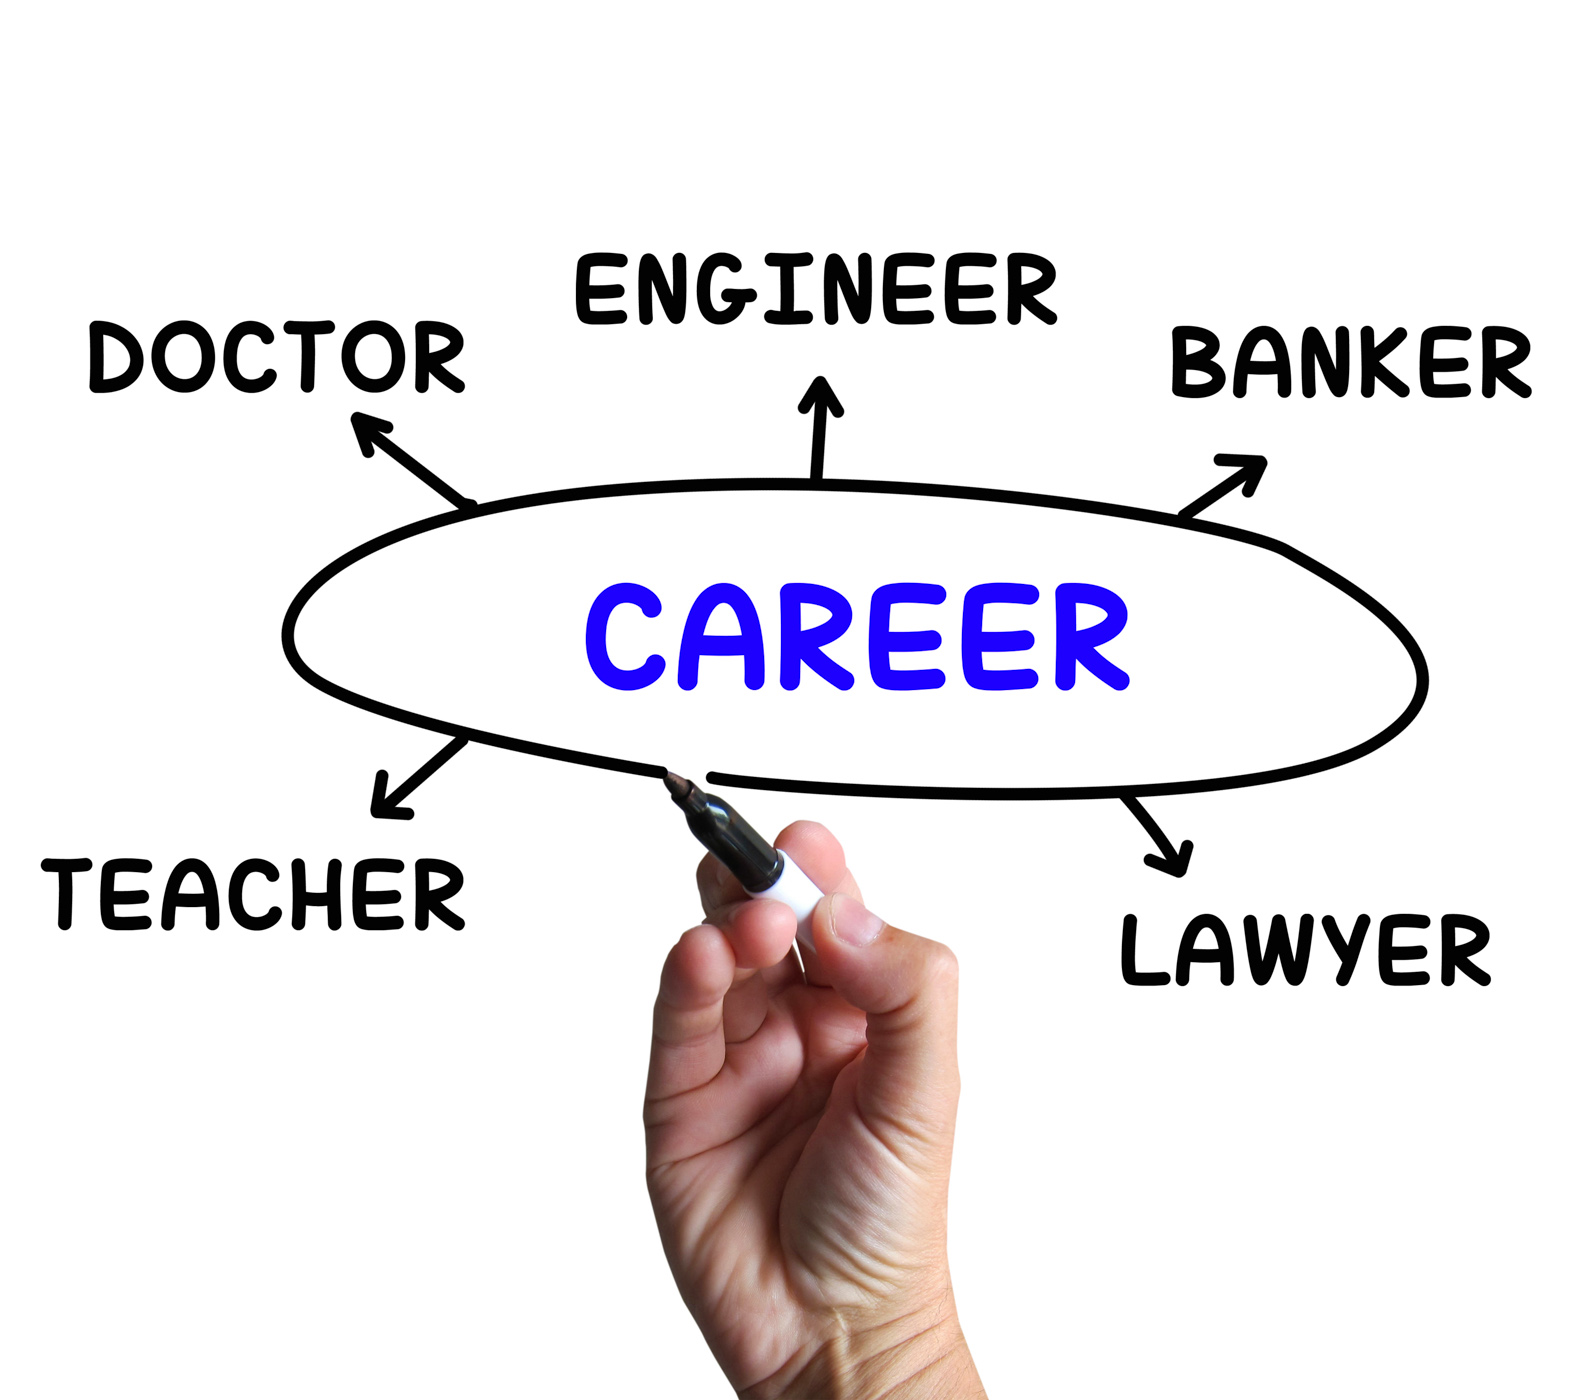 Career Diagram Means Profession And Field Of Work, Job, Work, Teacher, Professional, HQ Photo